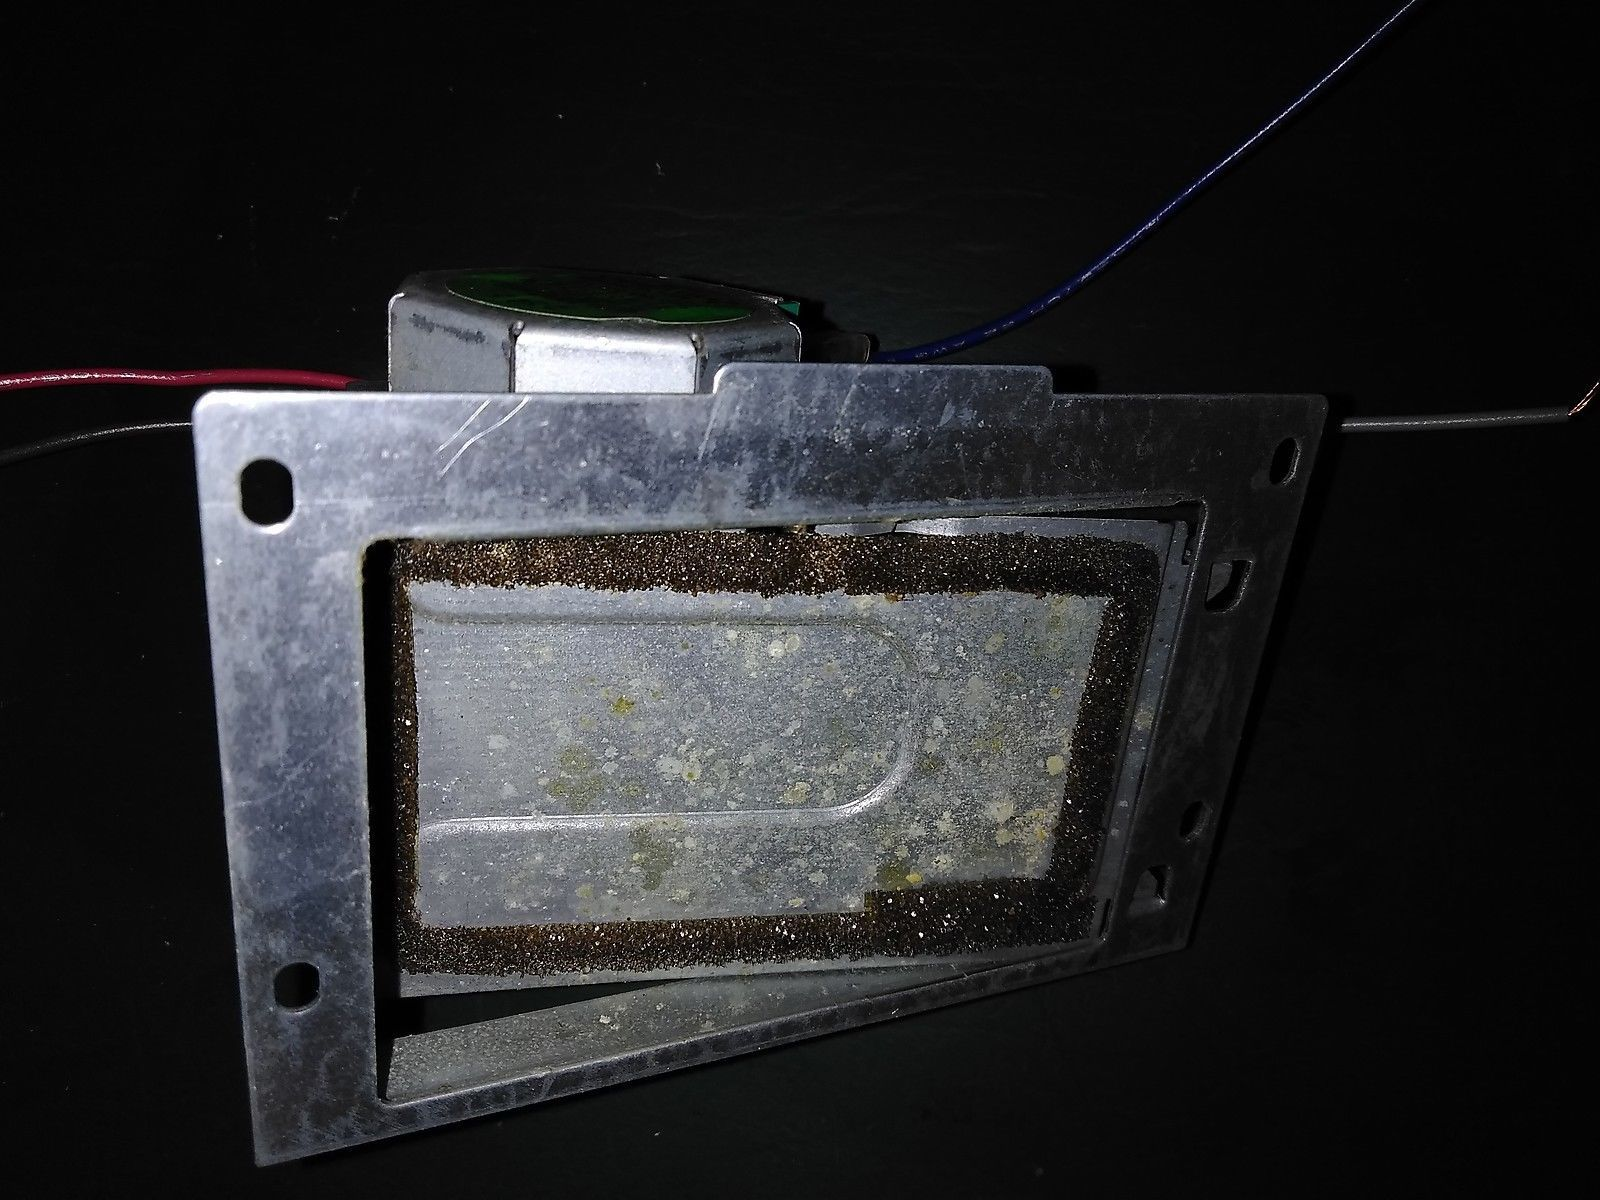 "Primary image for 7HHH51 VENT DOOR FROM OVEN, MOTOR DRIVEN, ALL STEEL, 3-5/8"" X 2-1/2"" OPENING, GC"